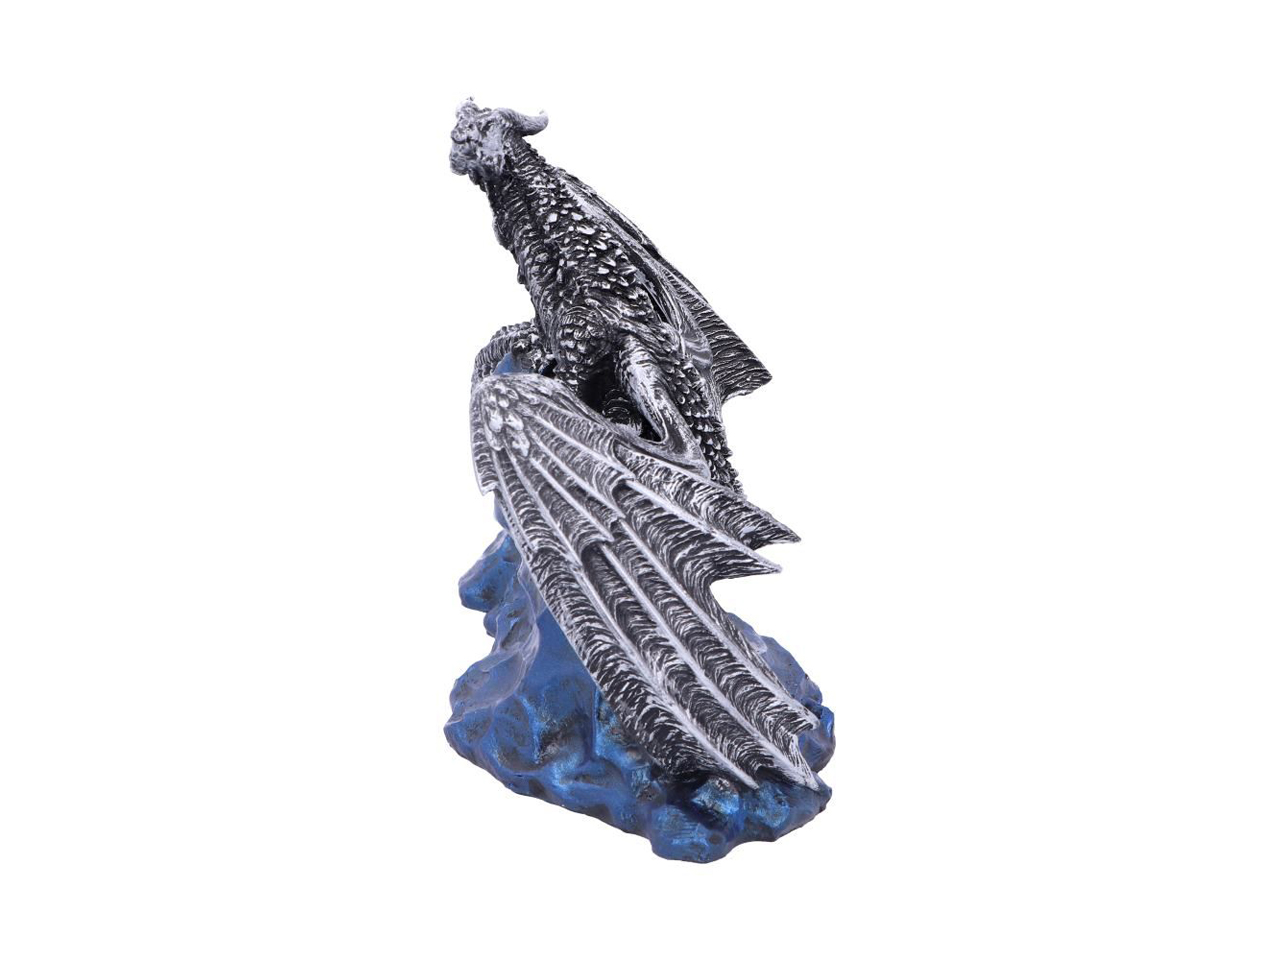 Samoon Dragon Figurine Ornament Silver Edition Blue Sandstone Poison Winds Central Asia Andrew Bill Nemesis Now